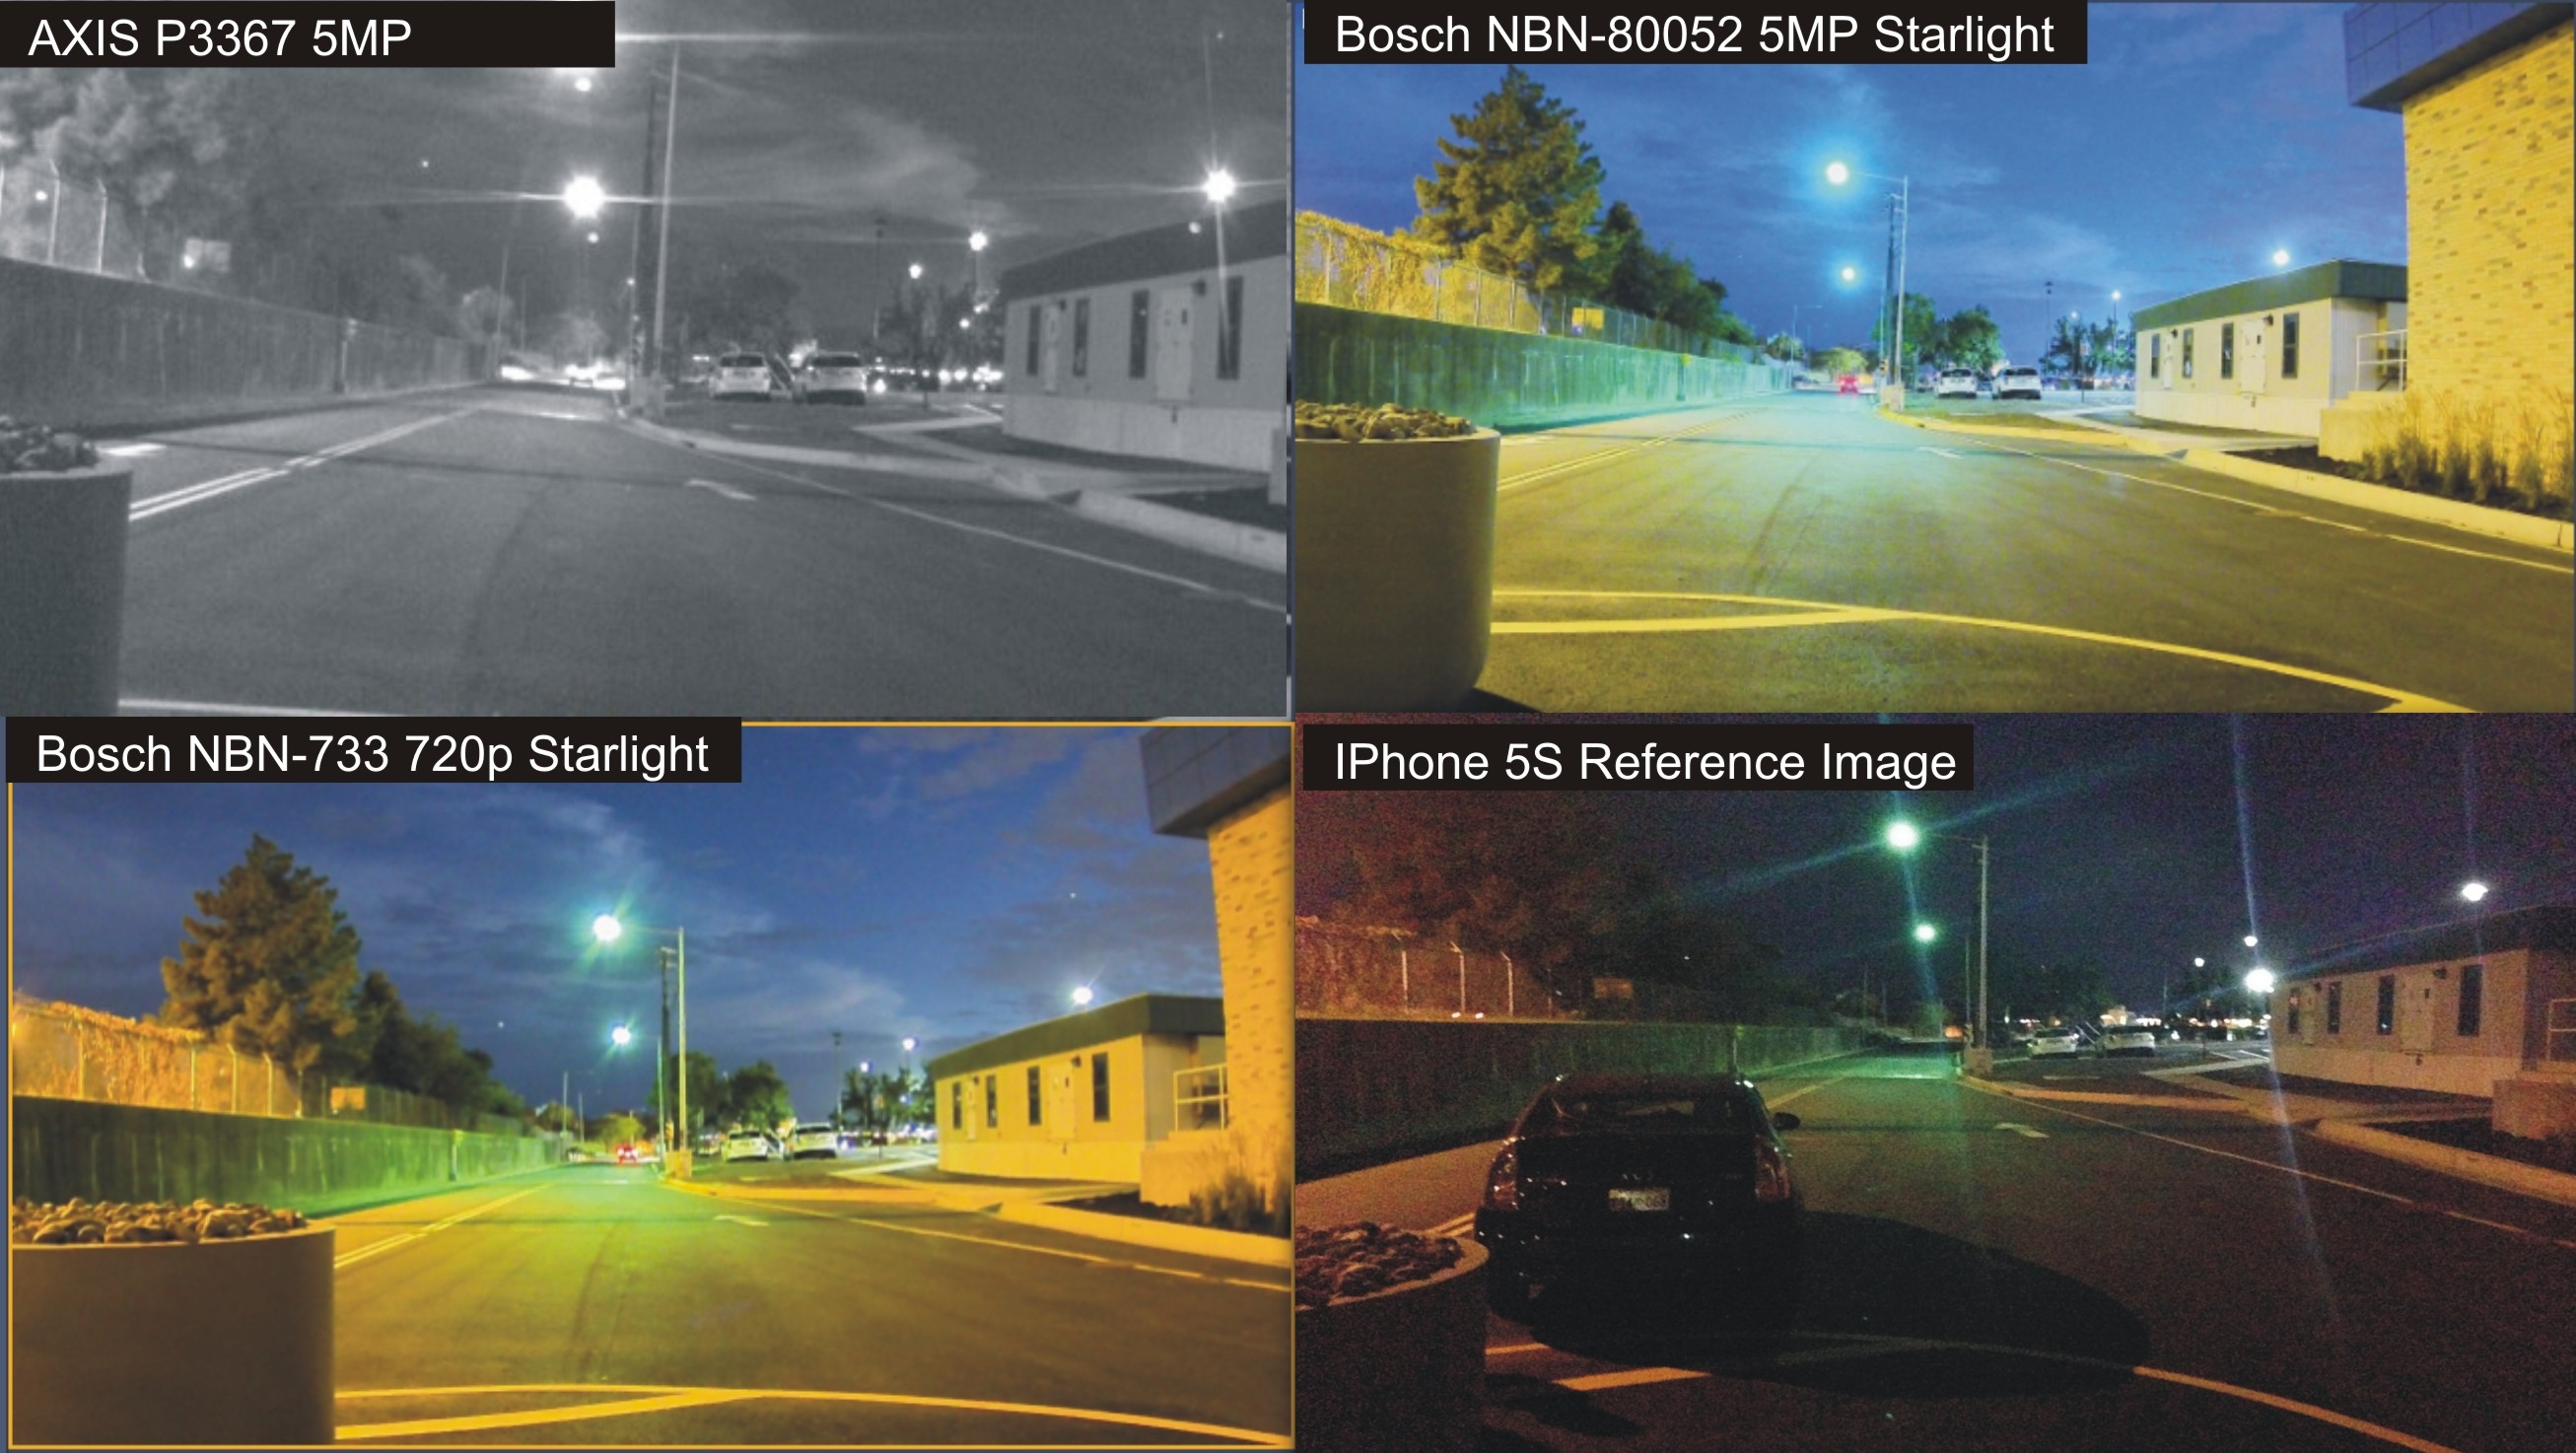 Axis_vs_Bosch_Low_Light_Shootout_9-2014_Final_Comparison